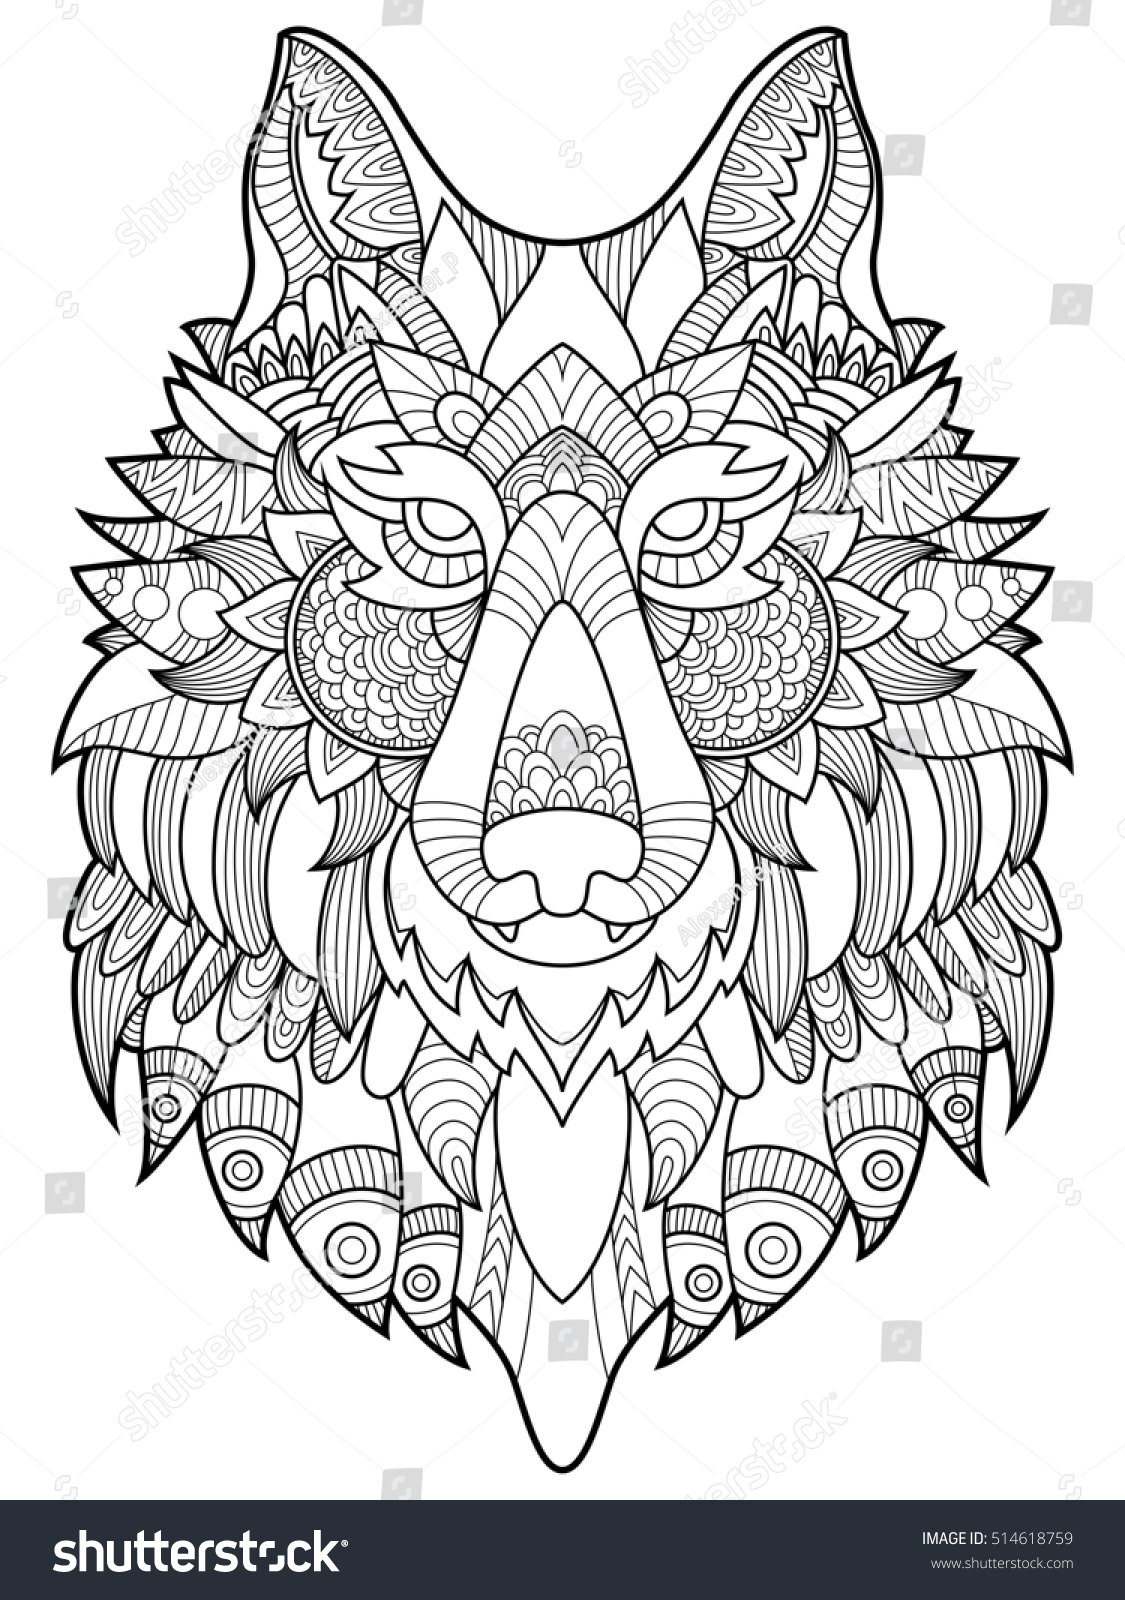 Anti stress colouring book asda - Wolf Coloring Book For Adults Raster Illustration Anti Stress Coloring For Adult Tattoo